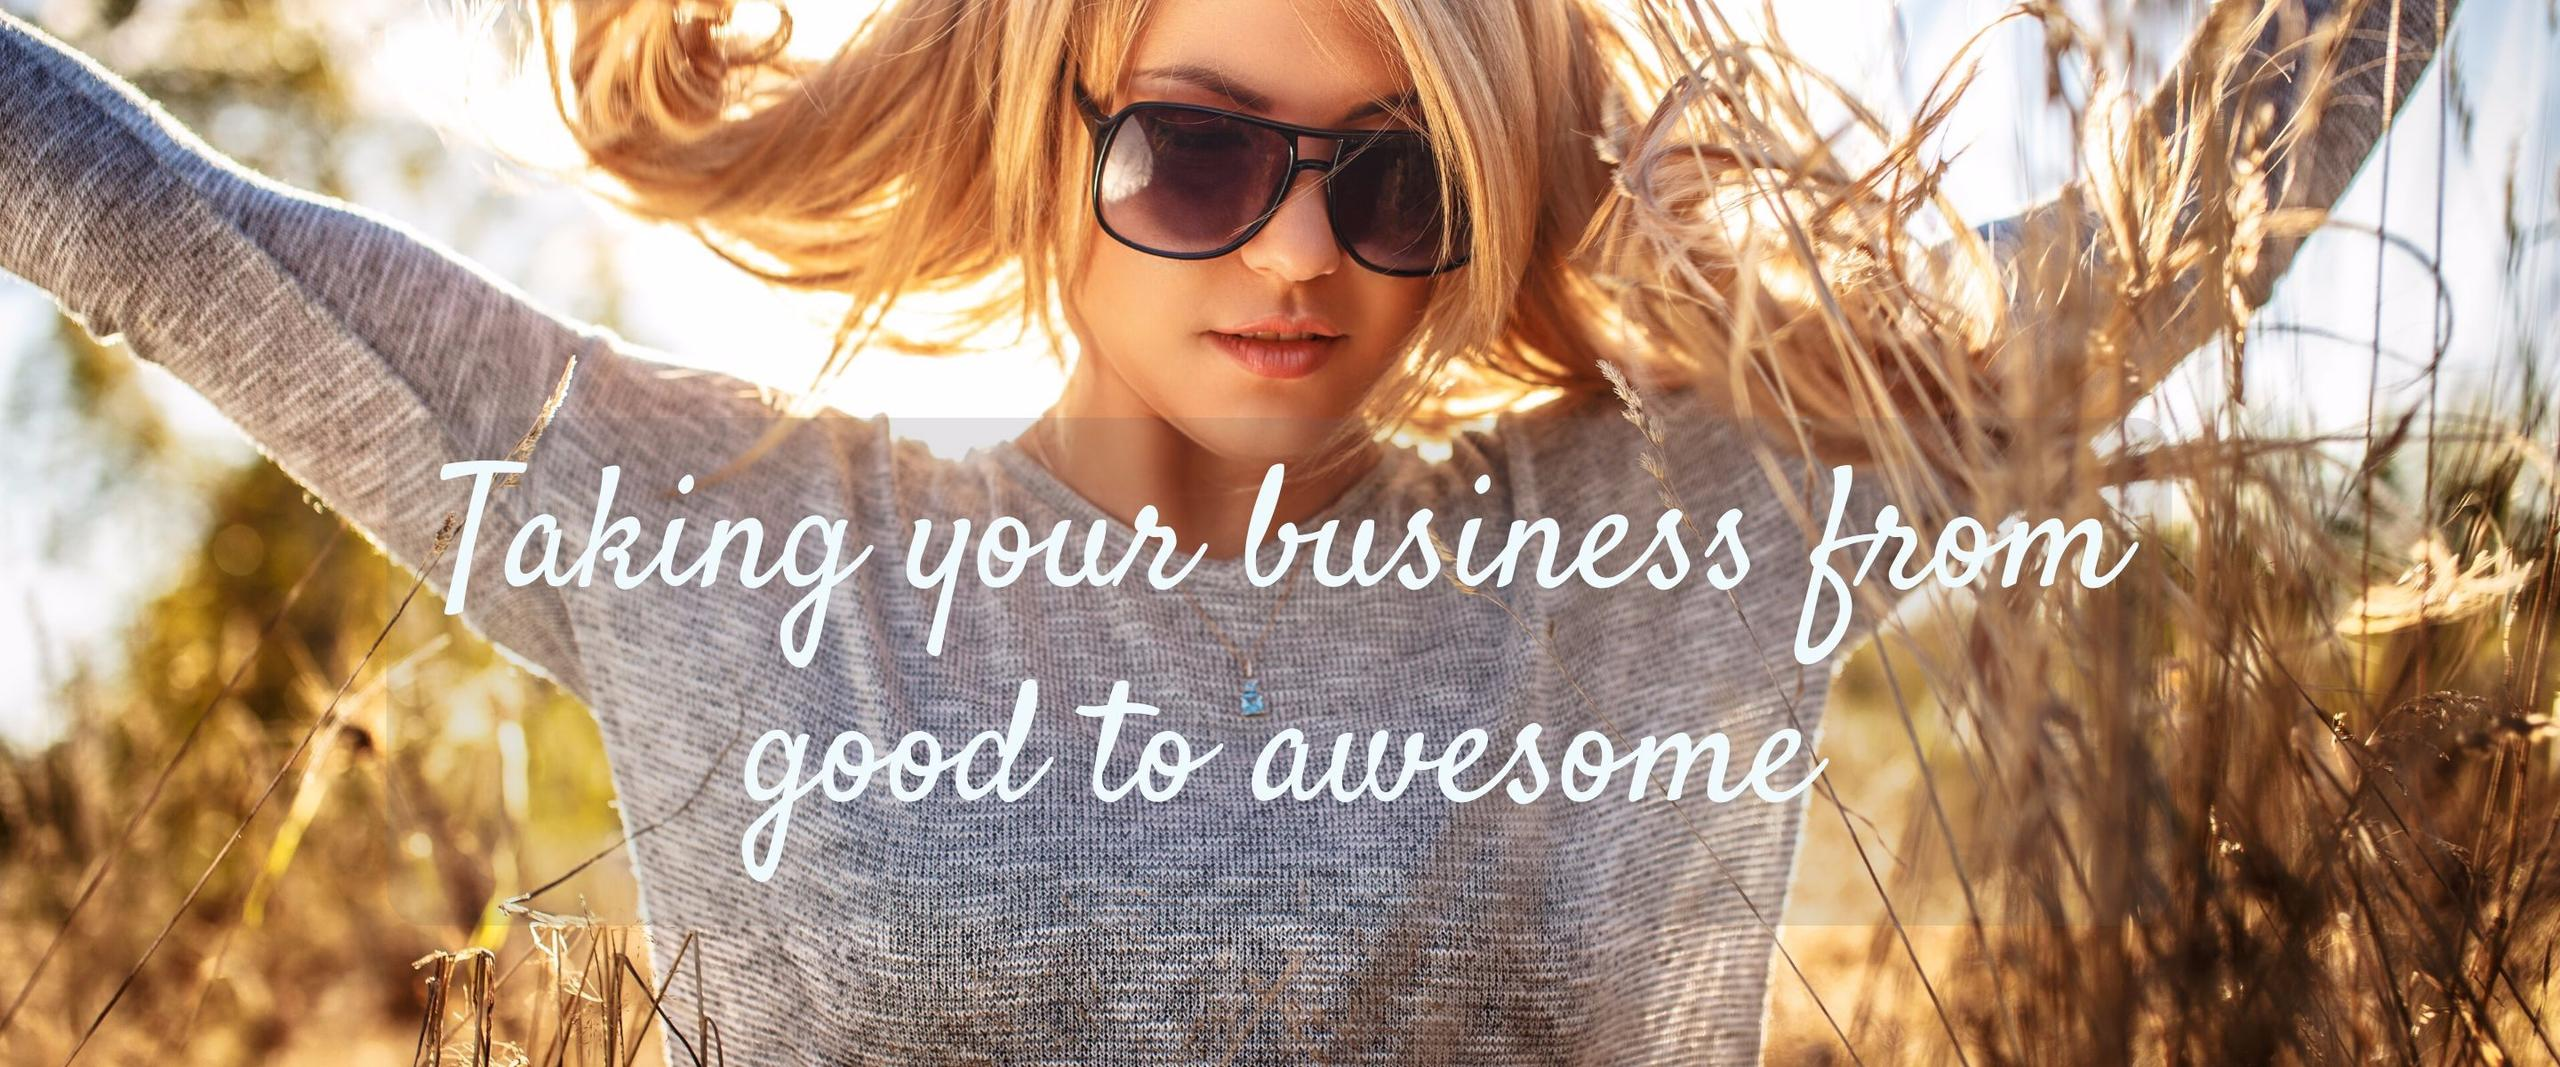 Work with Carol, Taking Your Business from Good to Awesome, Planet Peacock